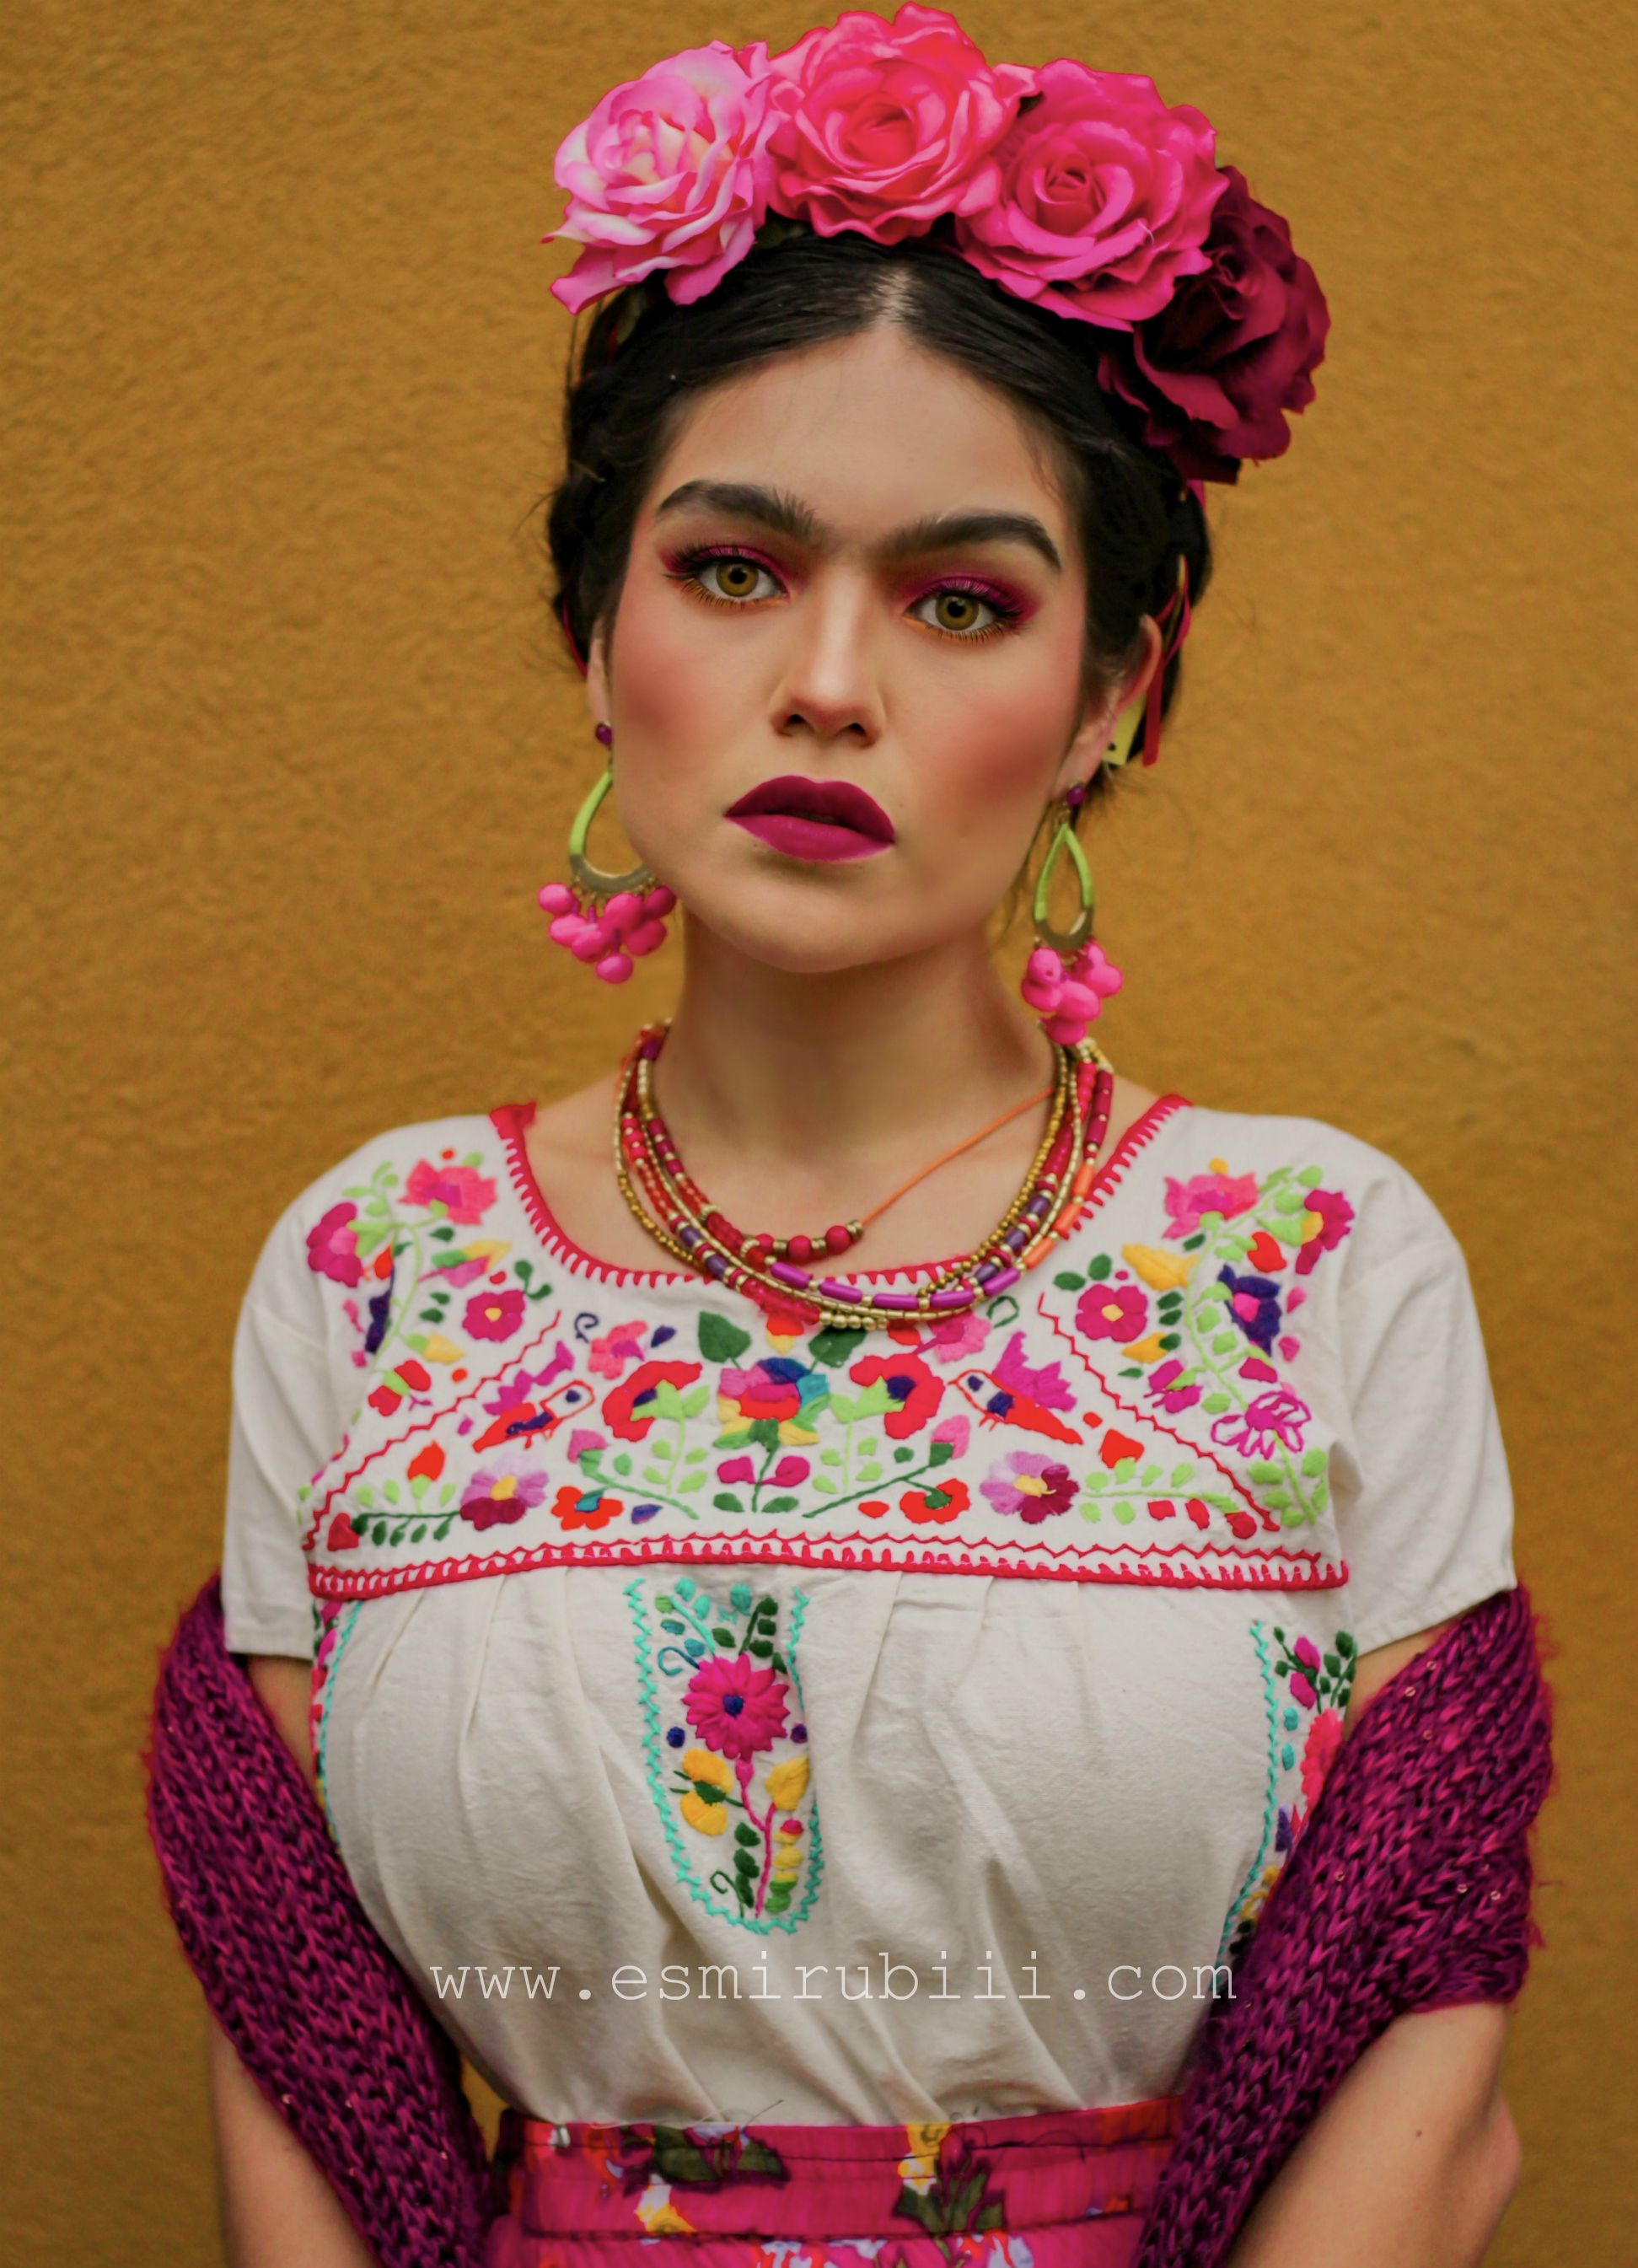 Channel your inner Frida Kahlo with this DIY makeup